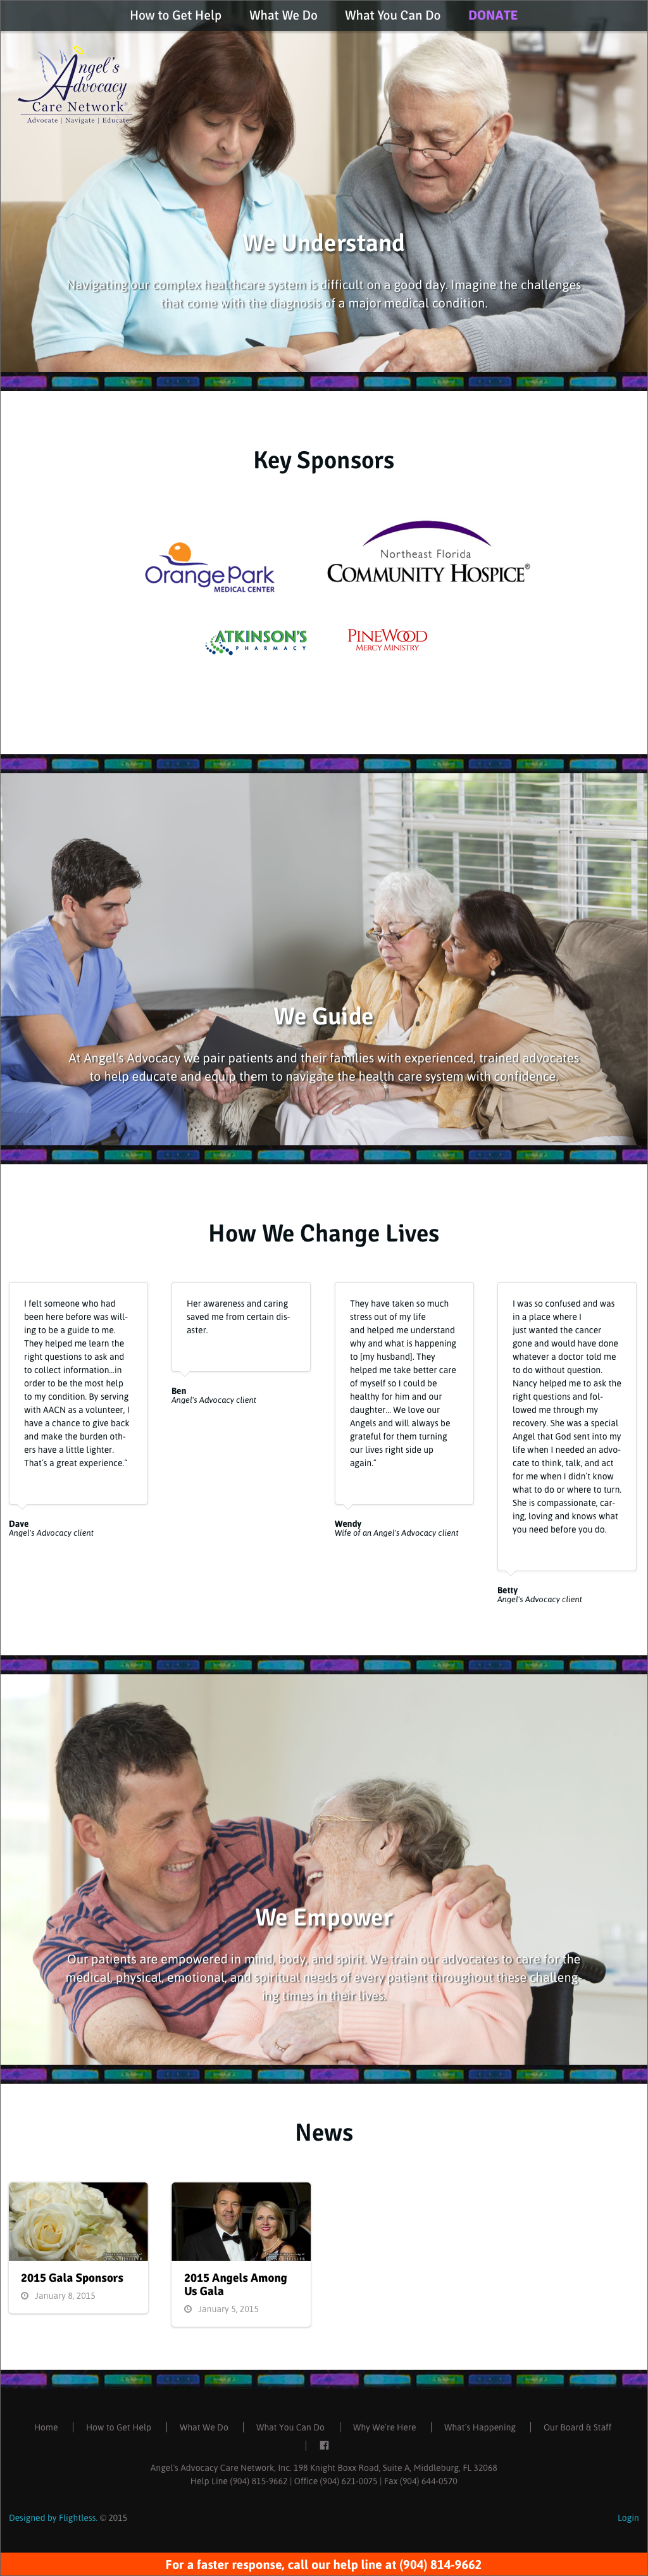 Care Network Home Page